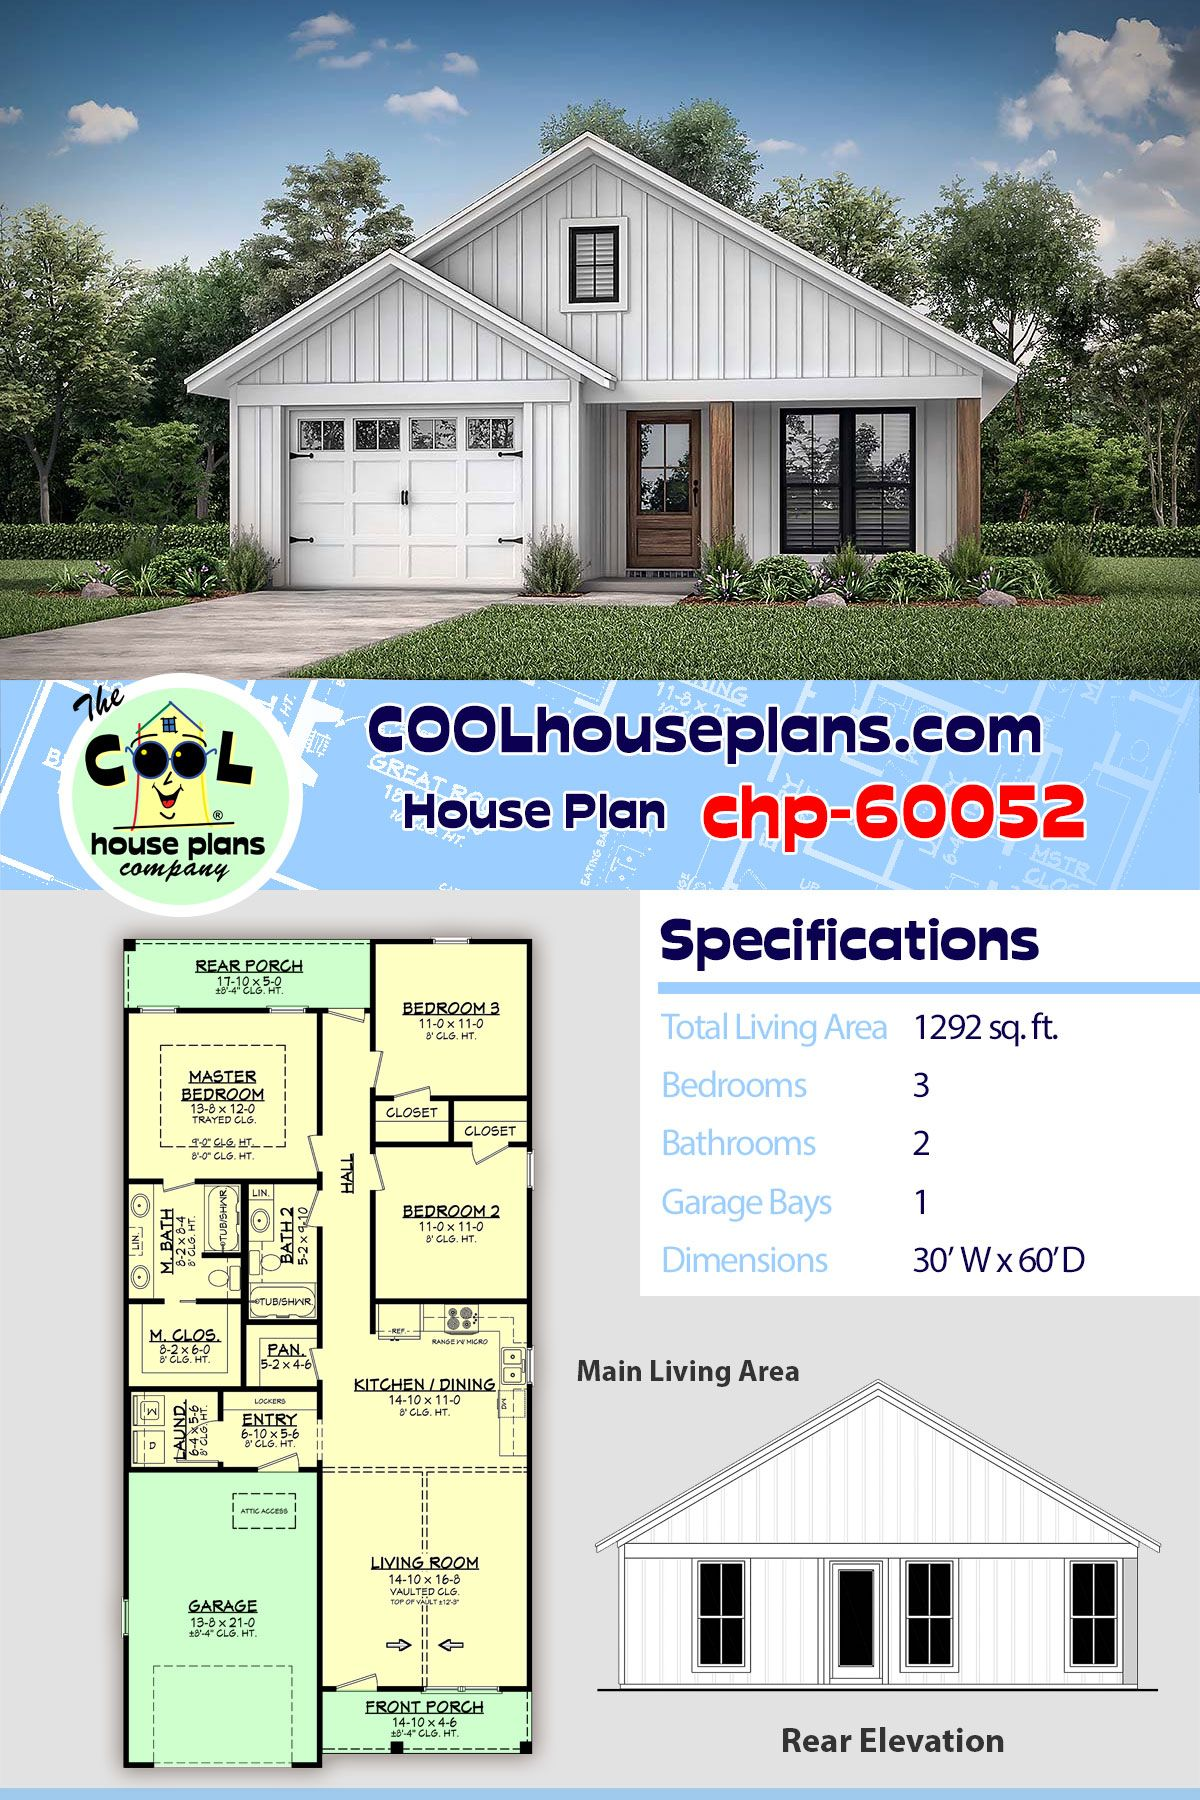 1292 Sq Ft Narrow House Plan Under 30 Ft In Width Chp 60052 At Cool House Plans 3 Beds 2 Baths Narrow House Plans Narrow Lot House Plans House Plans